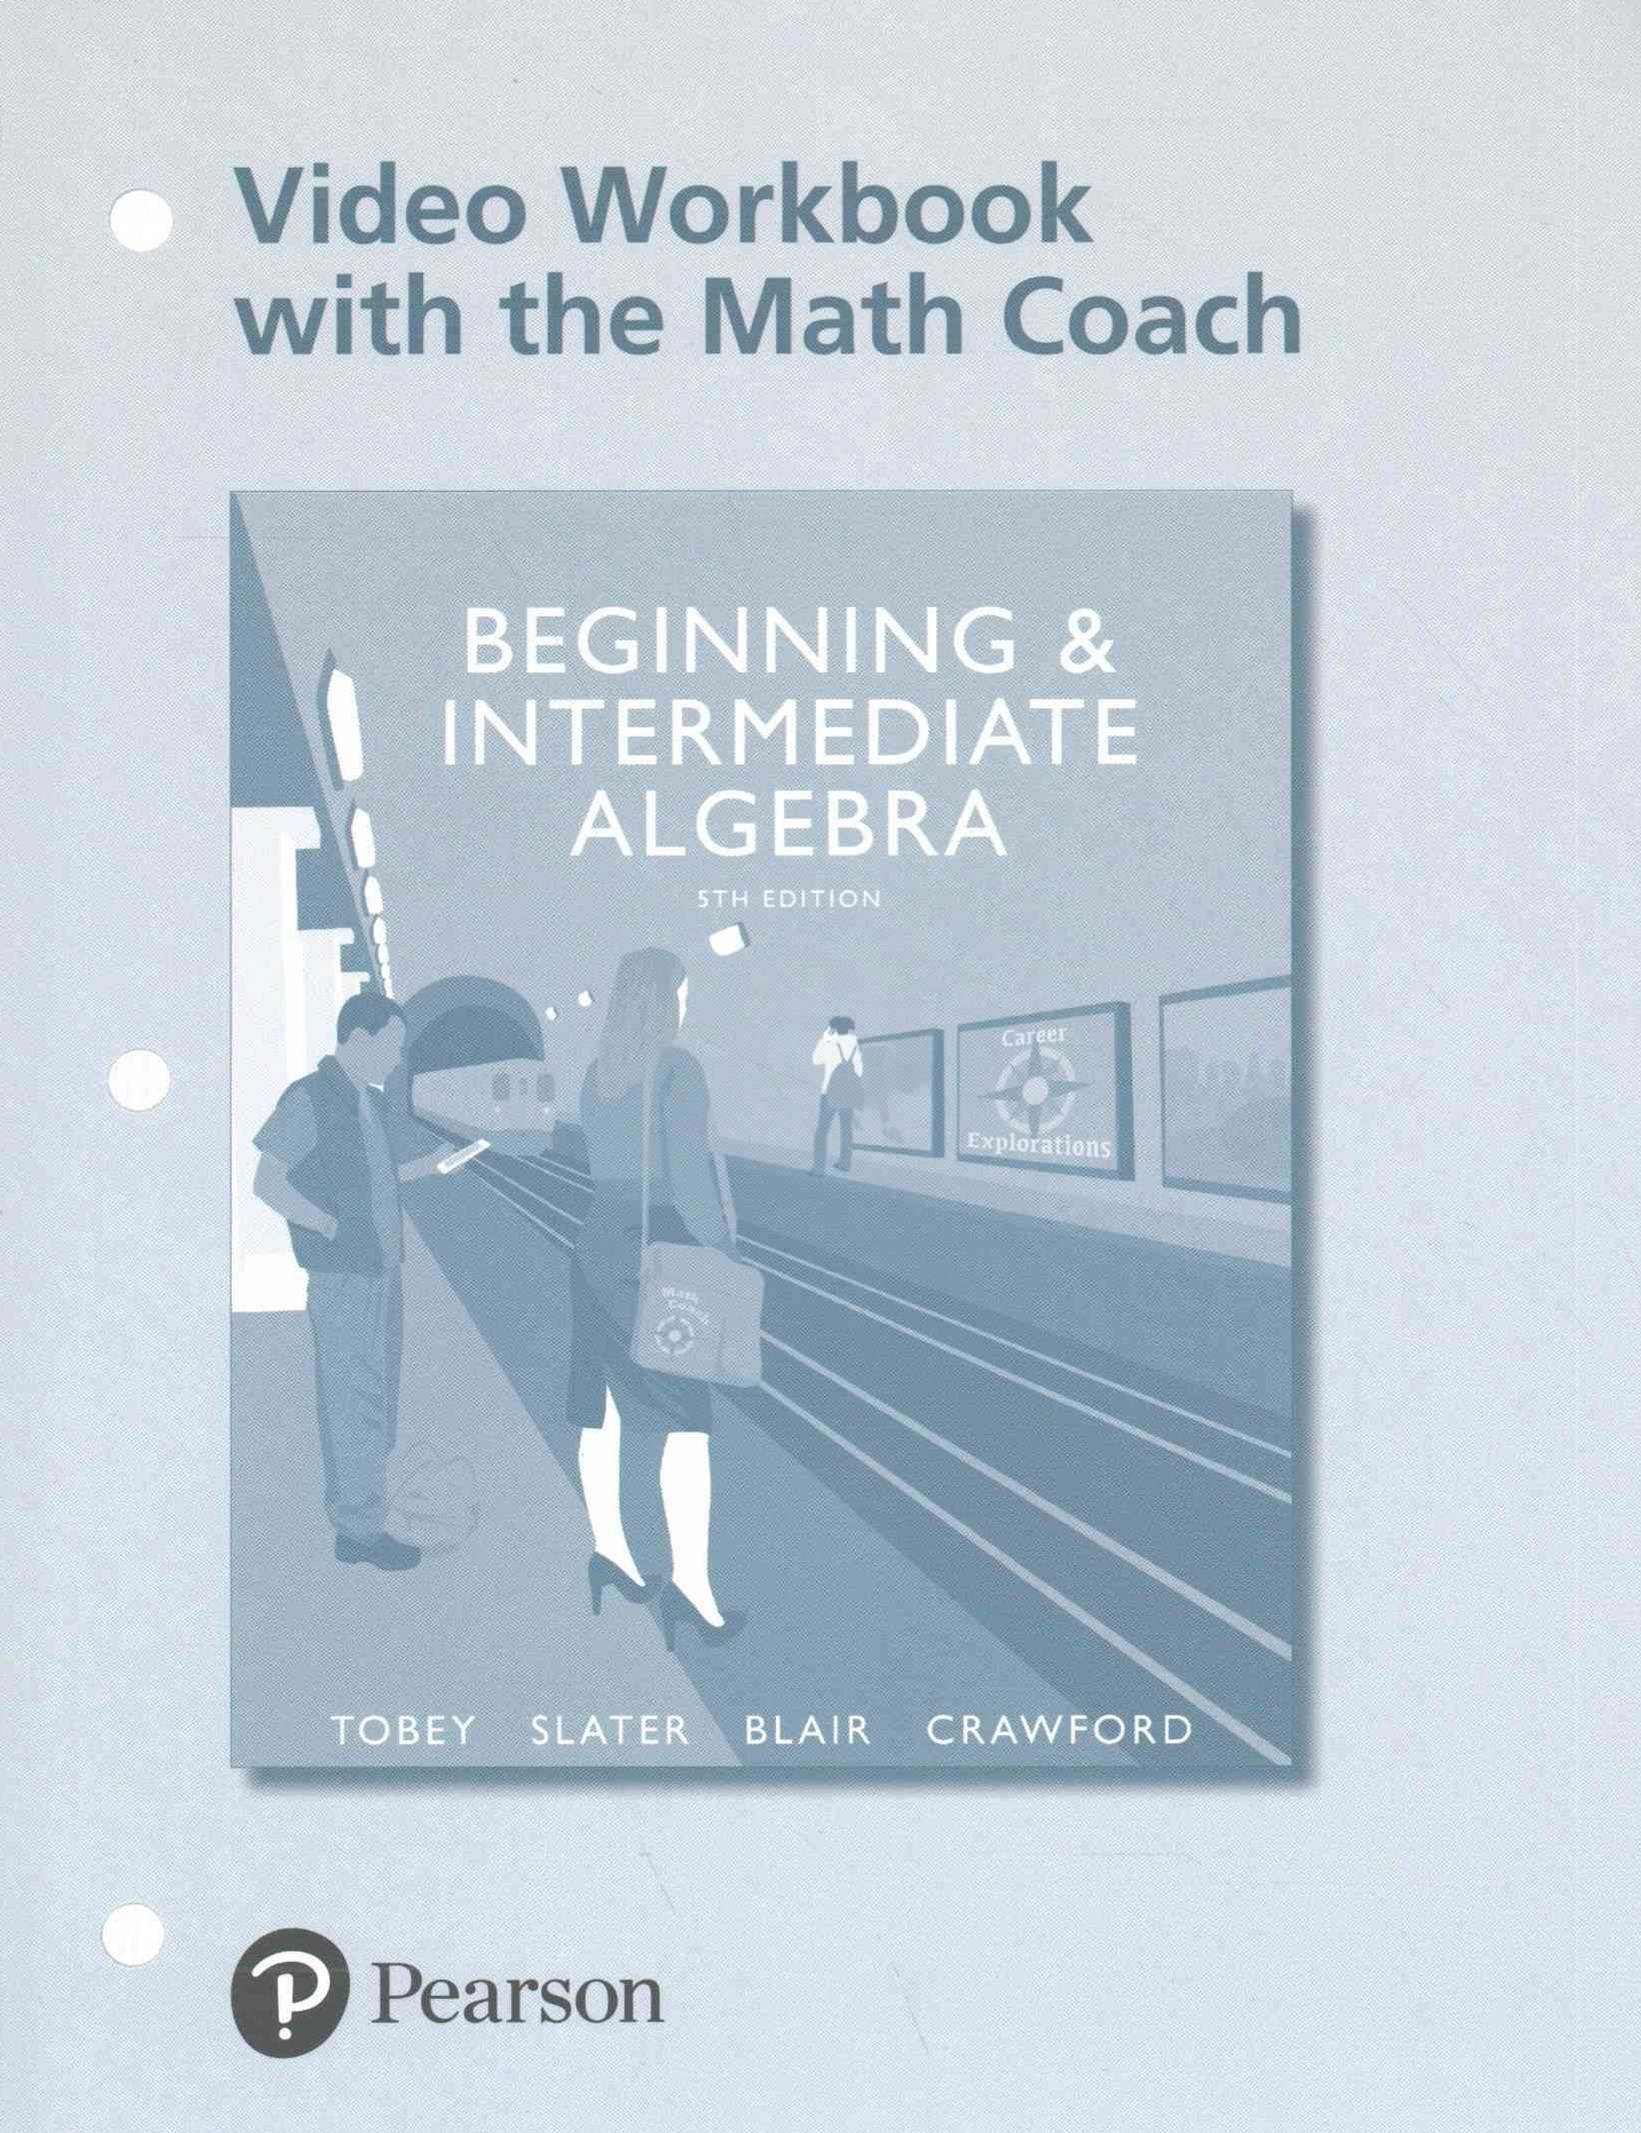 Beginning and Intermediate Algebra MyMathLab Access Card PLUS Video Notebook with the Math Coach